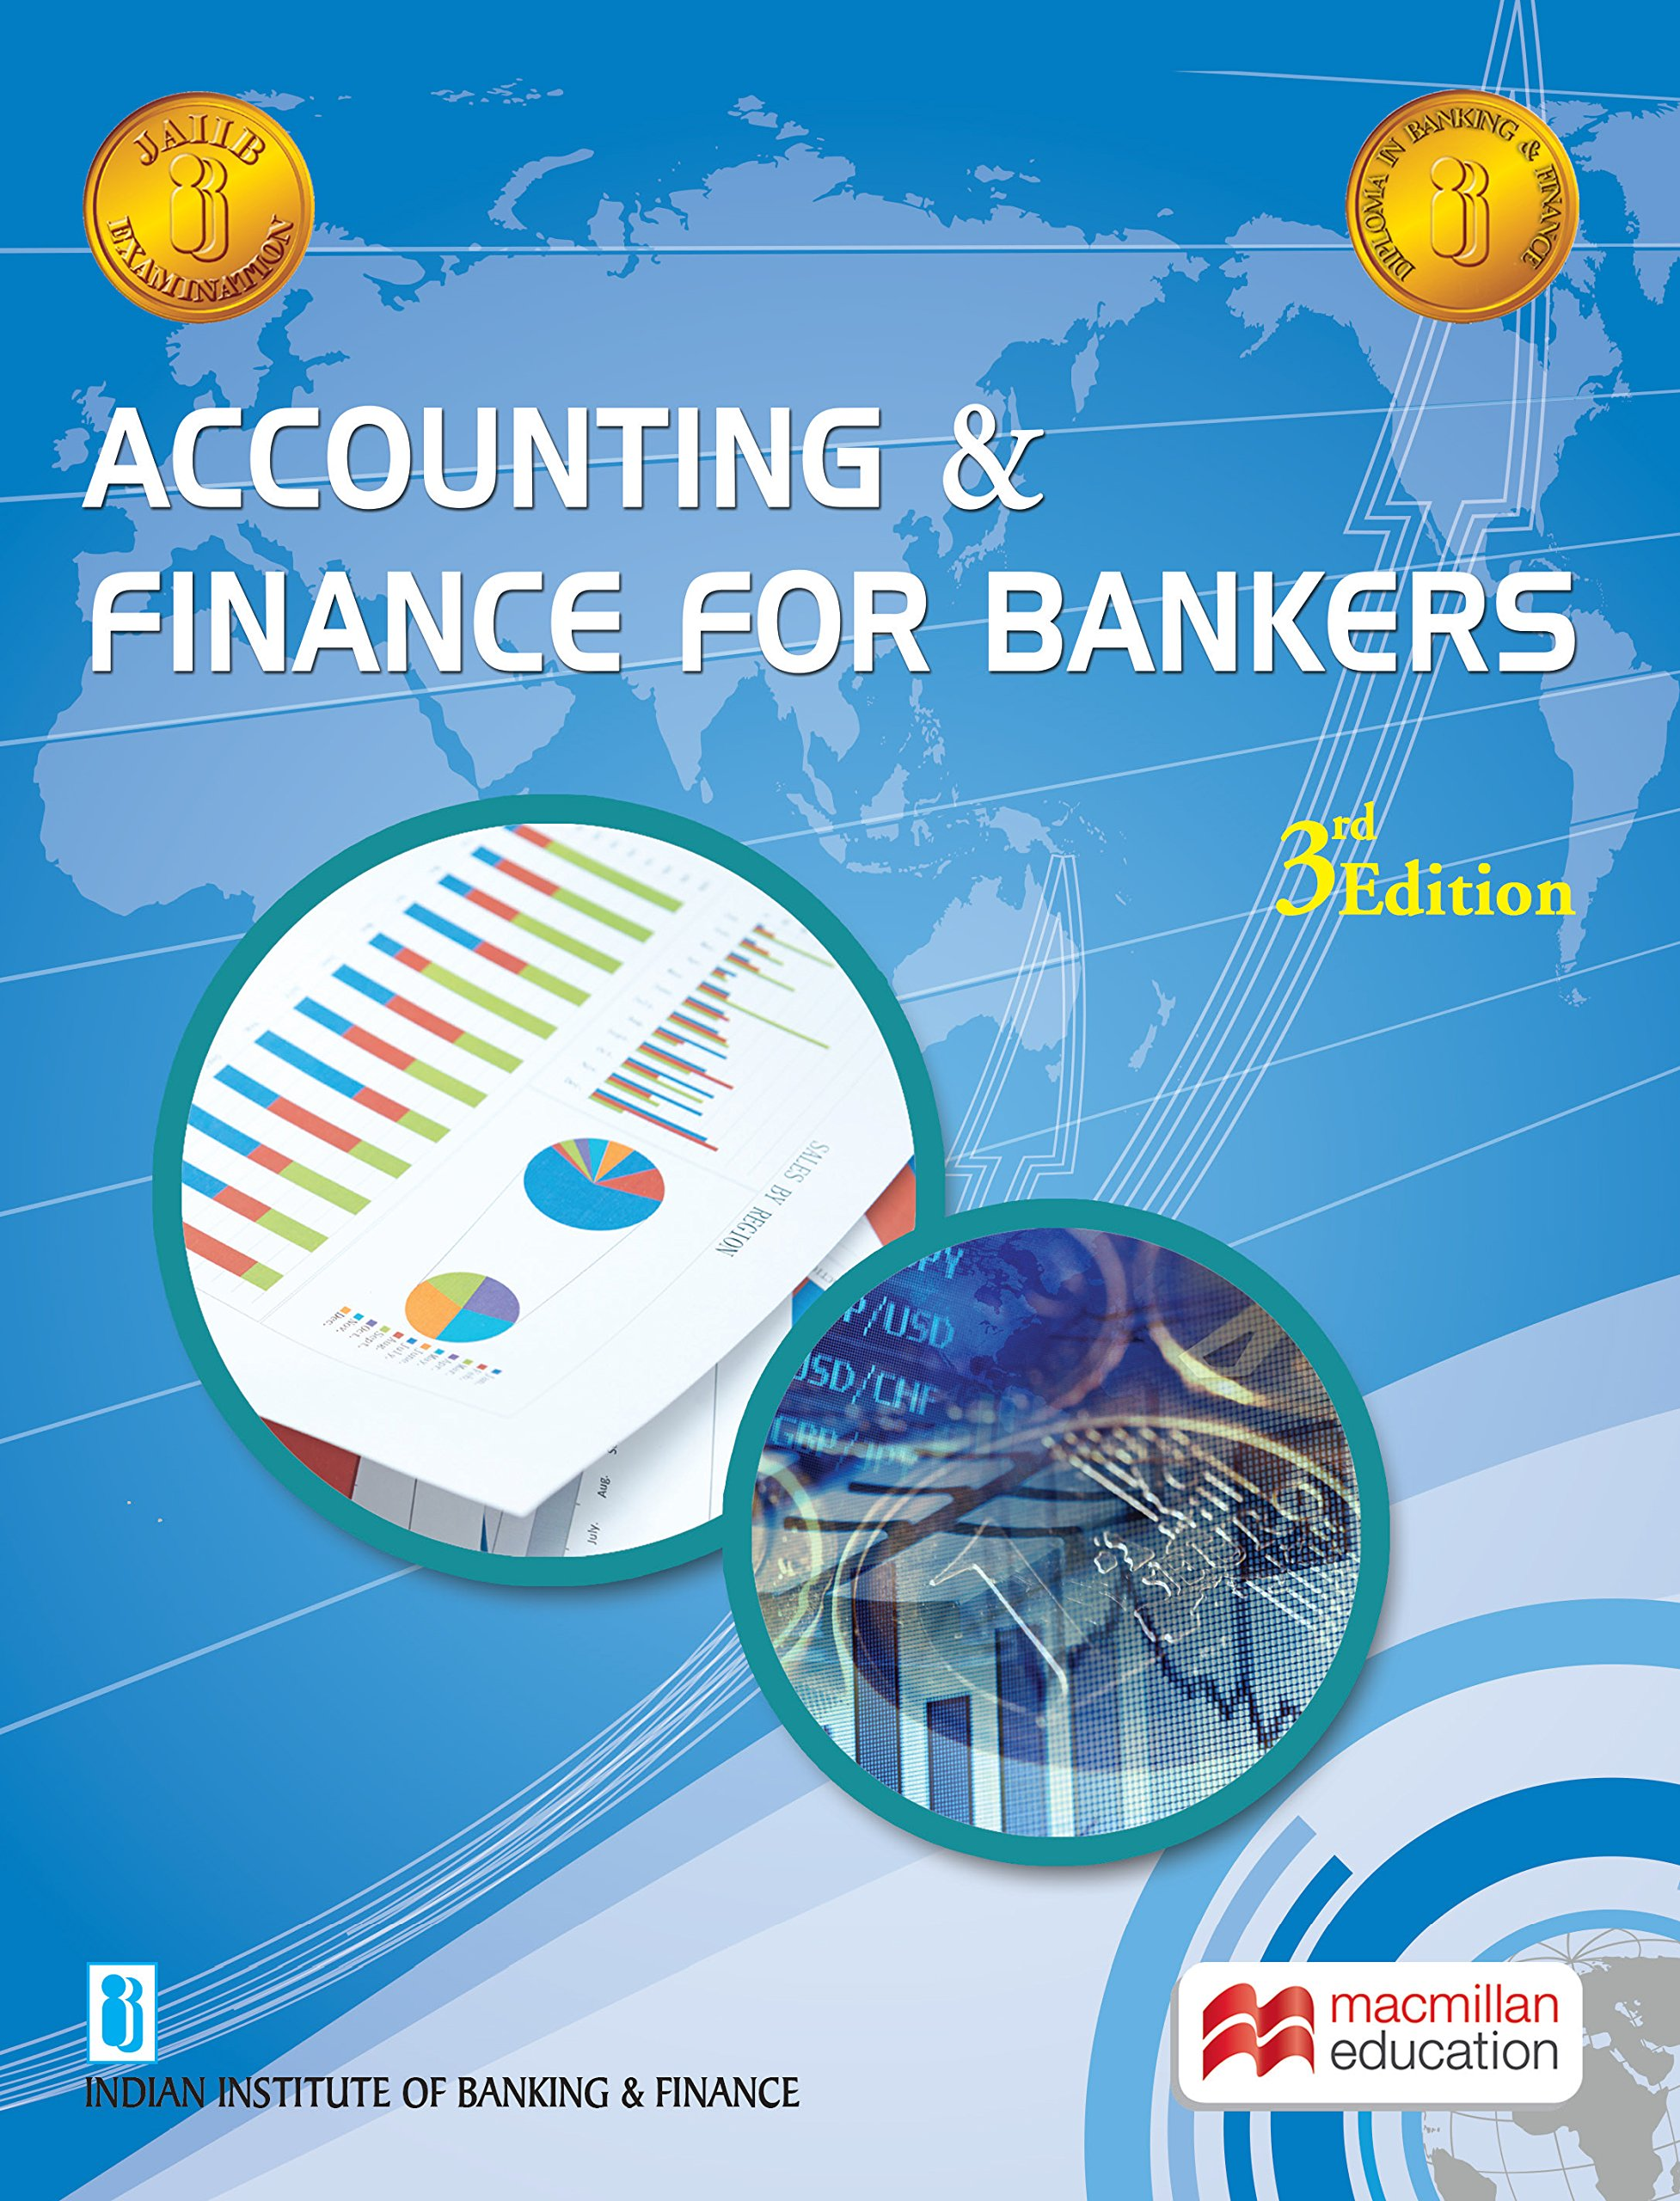 Buy accounting and finance for bankers book online at low prices buy accounting and finance for bankers book online at low prices in india accounting and finance for bankers reviews ratings amazon fandeluxe Choice Image